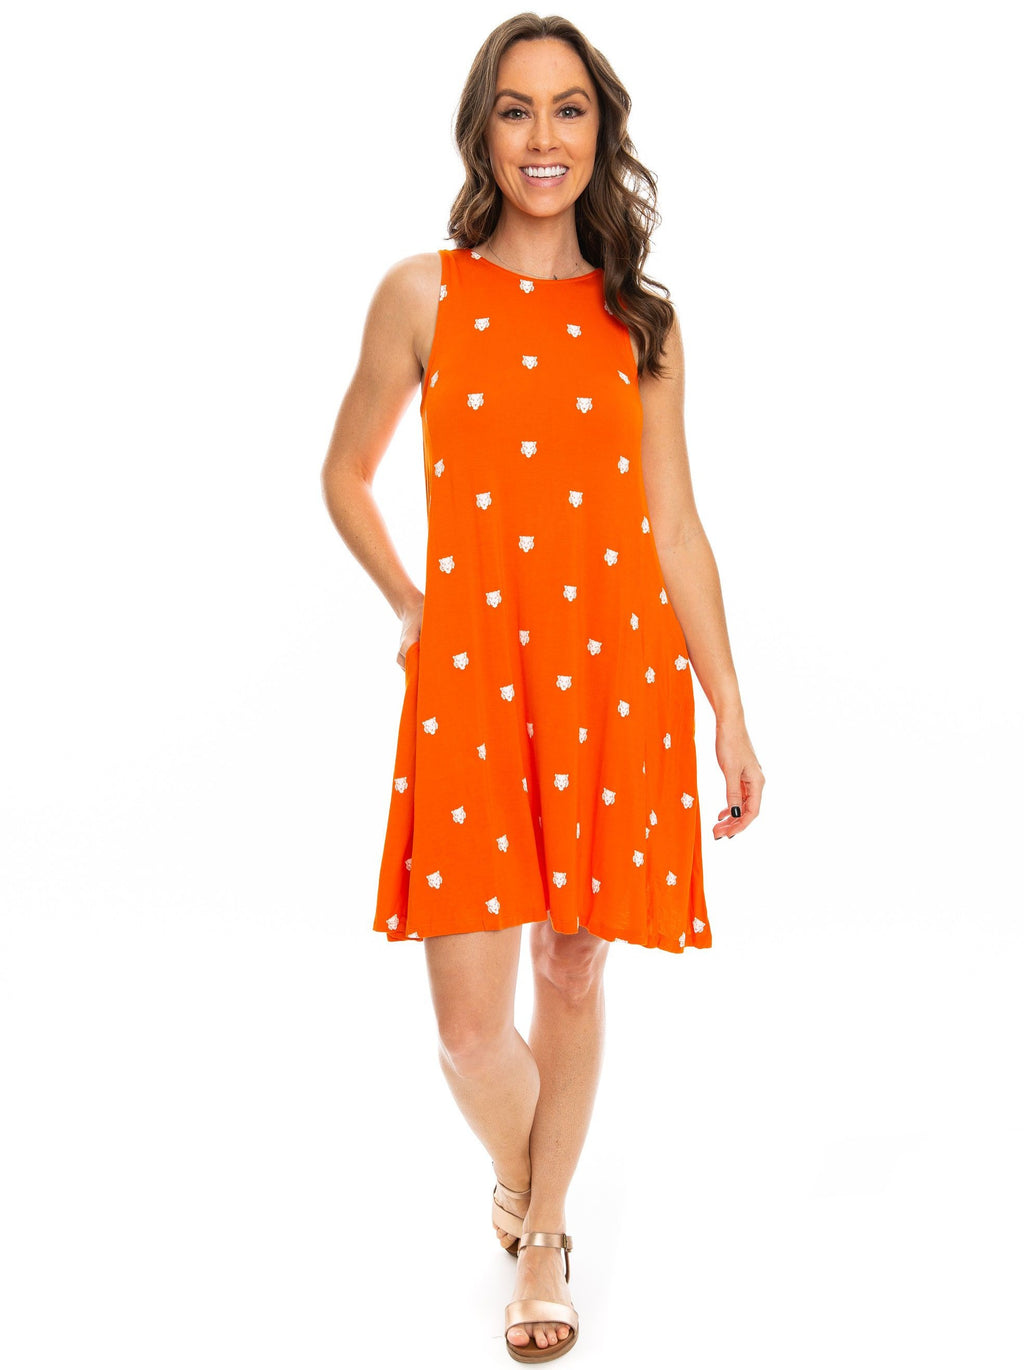 The Tiger Swing Dress